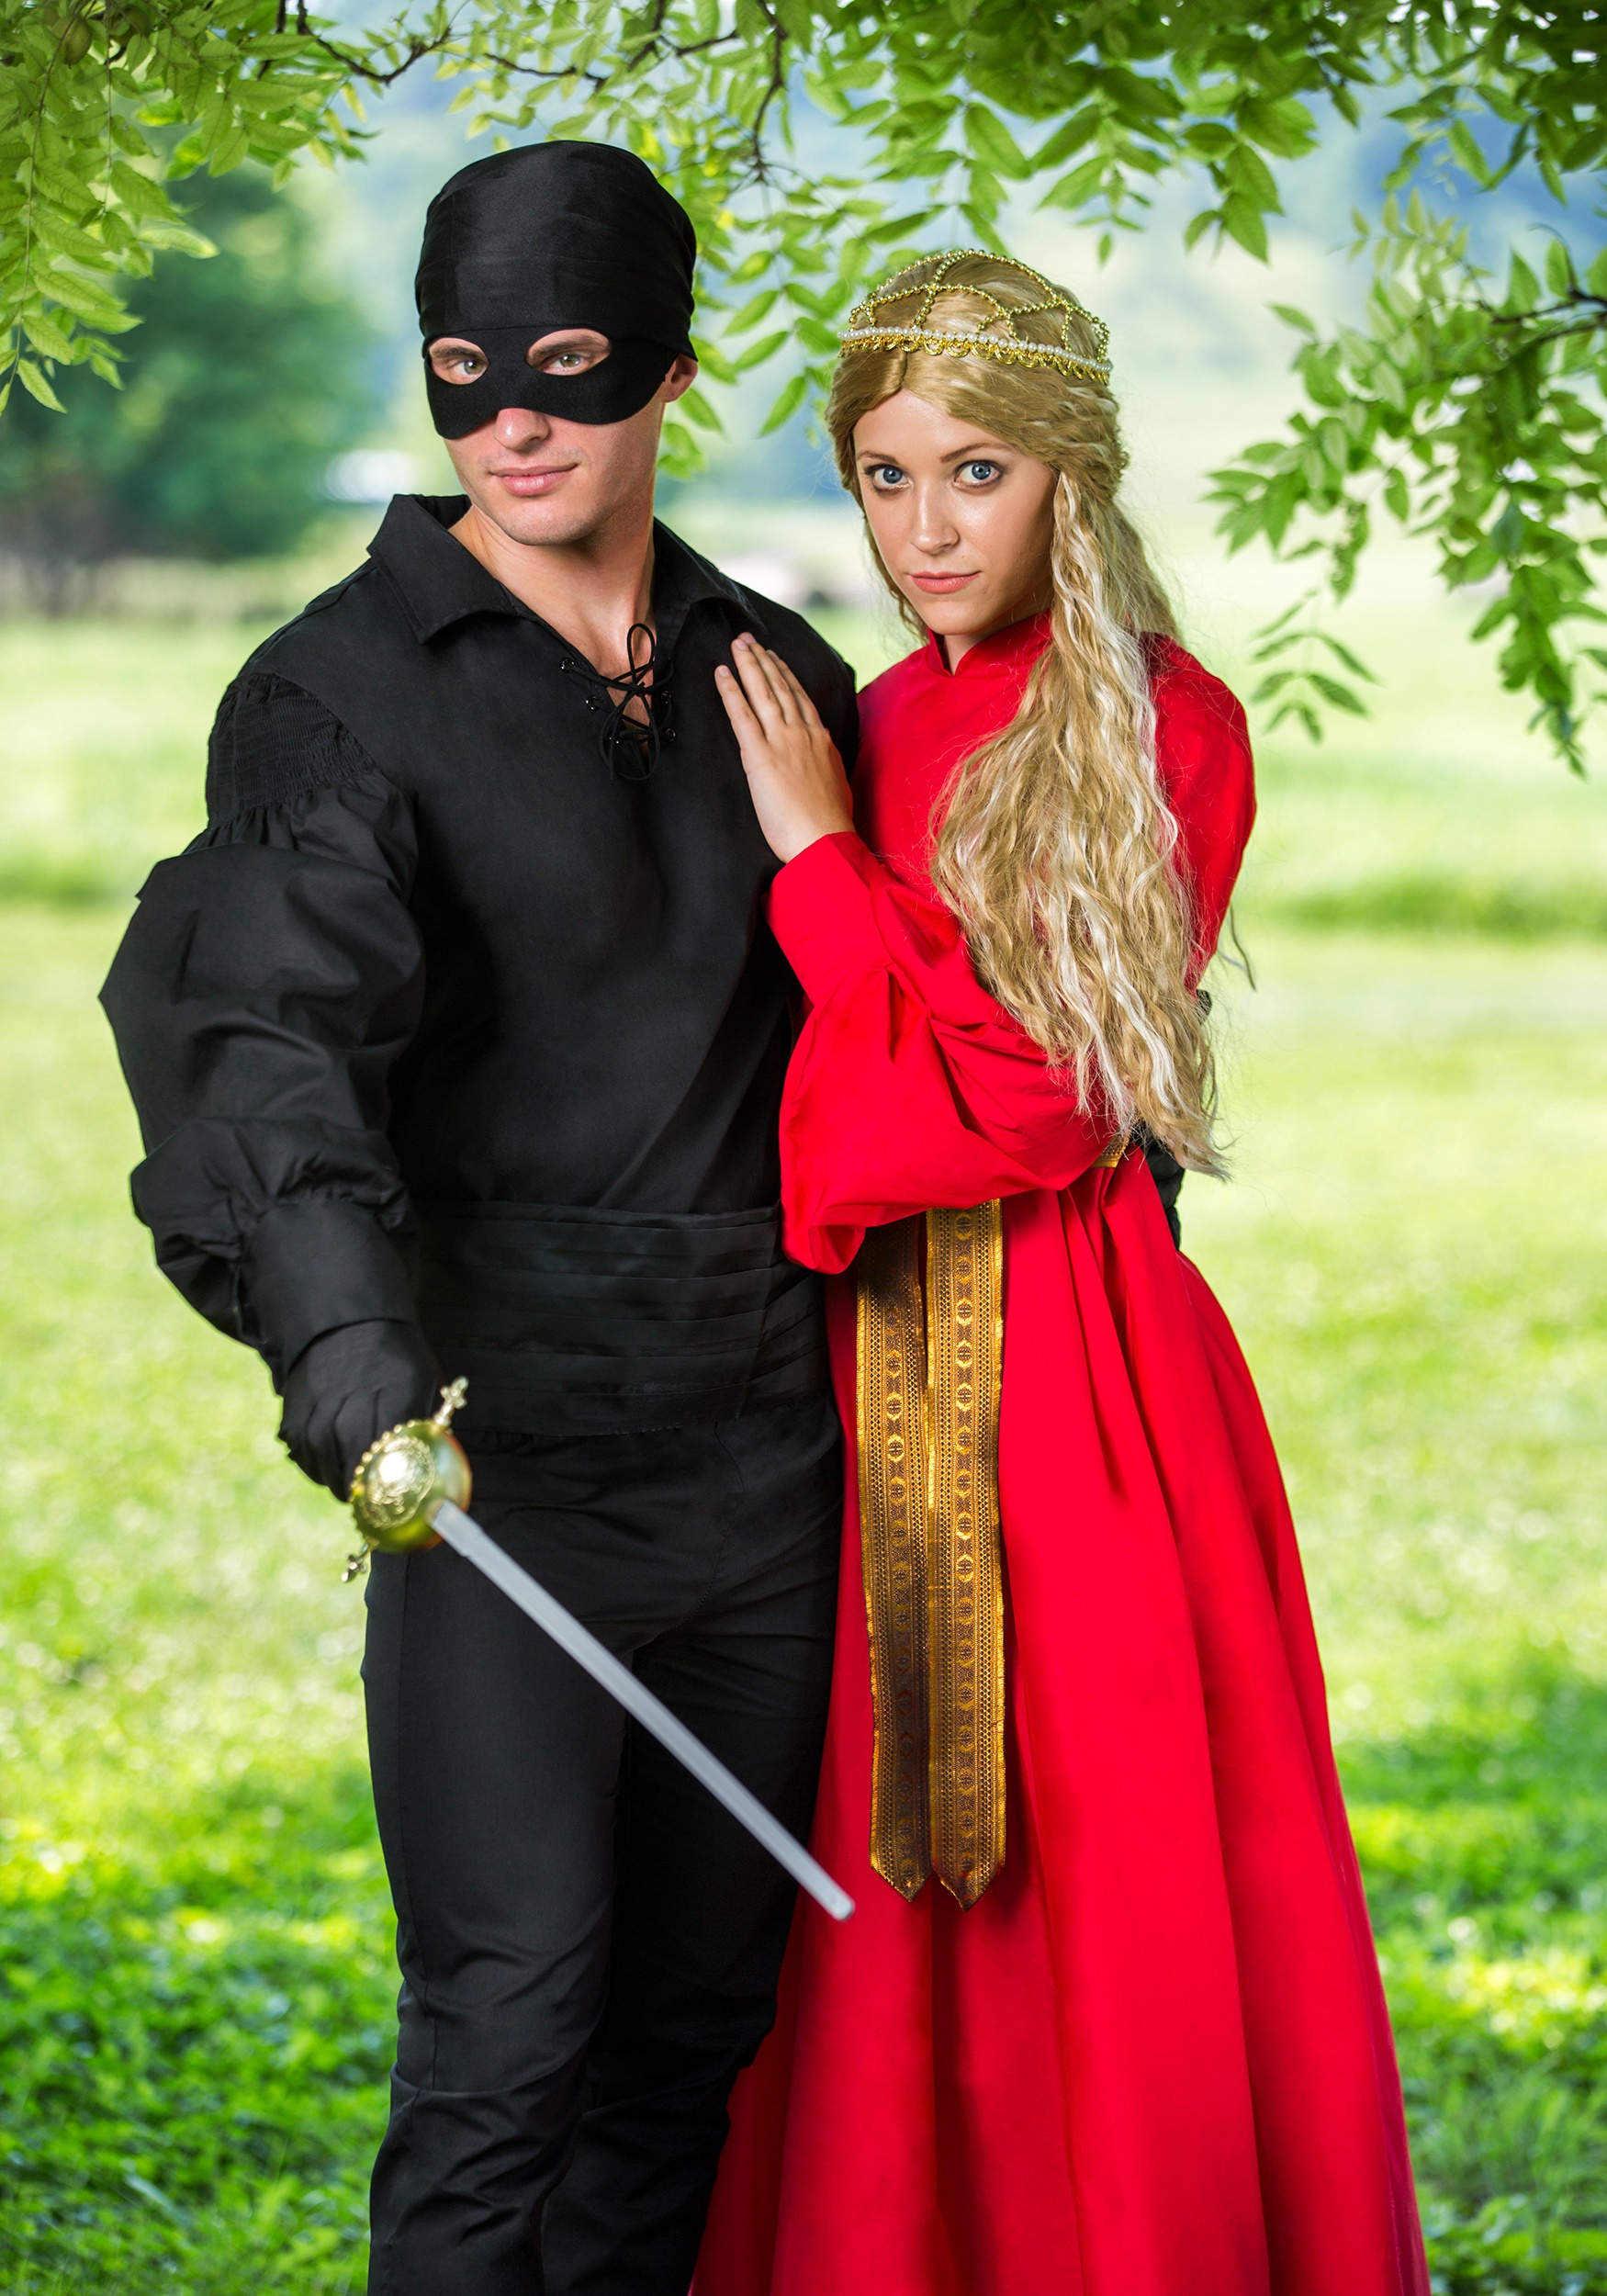 Halloween Costumes For Adults Only